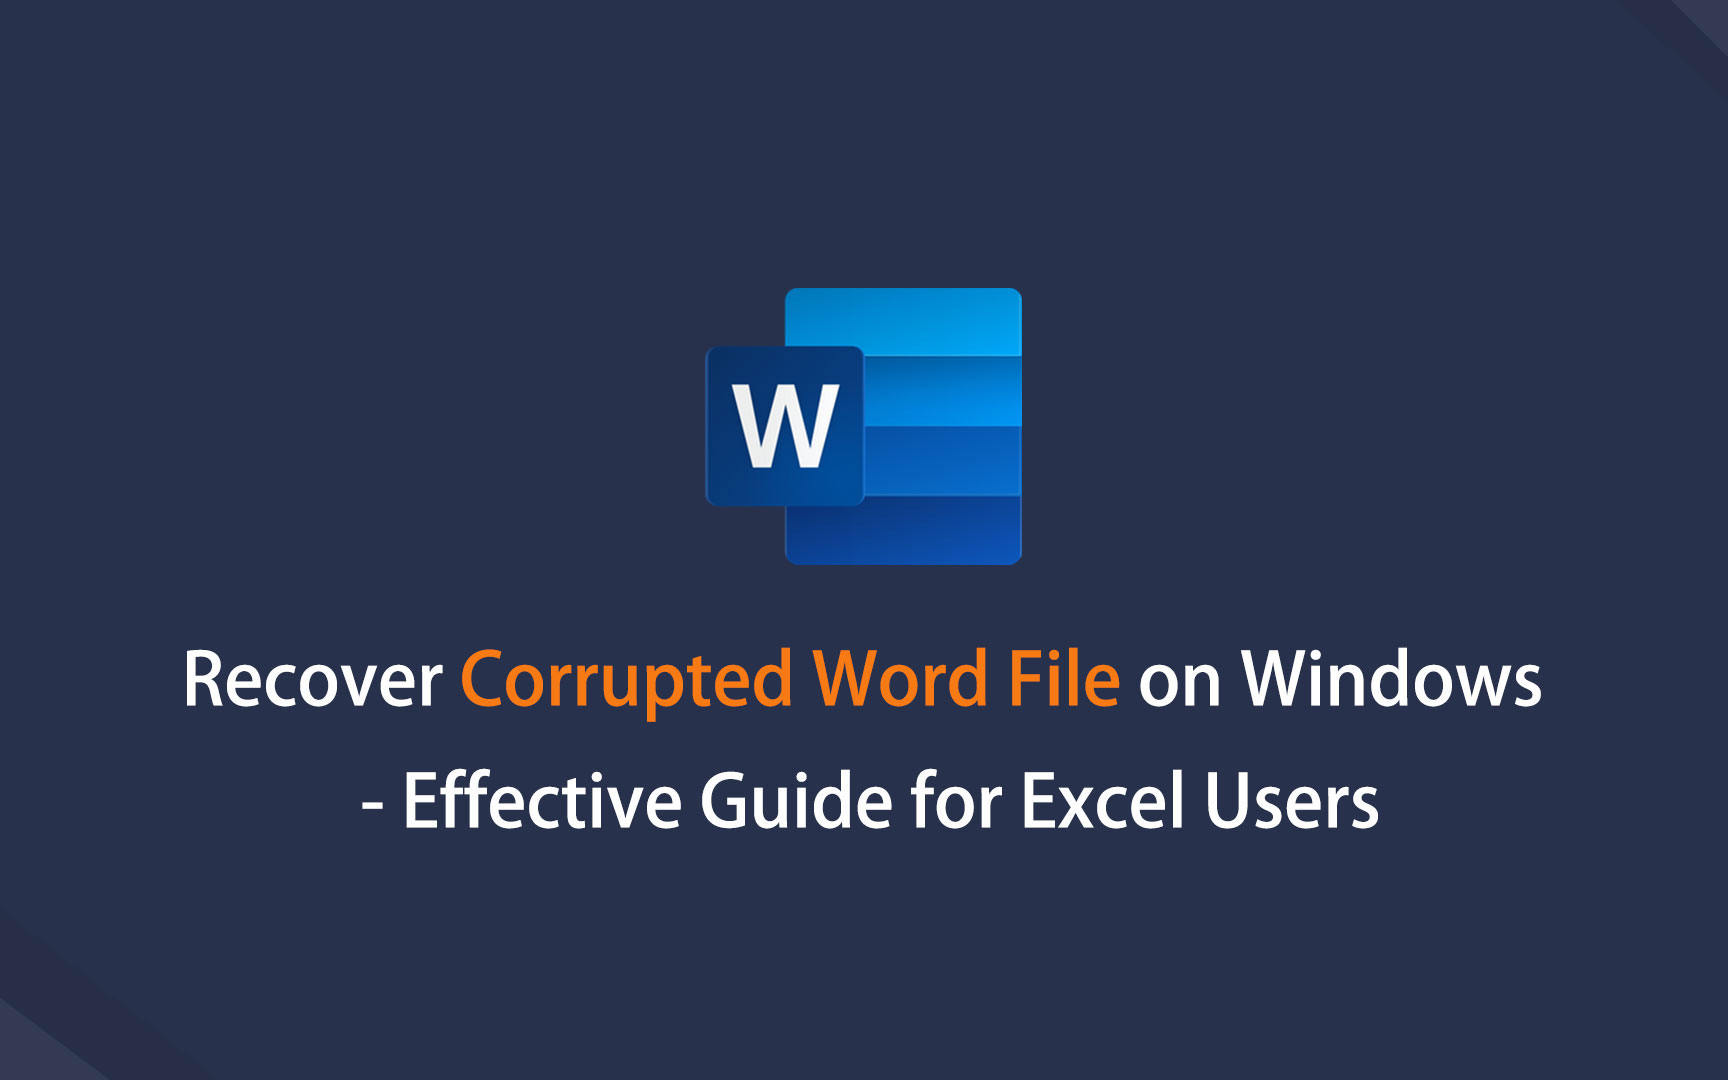 Recuperar archivo de Word dañado en Windows